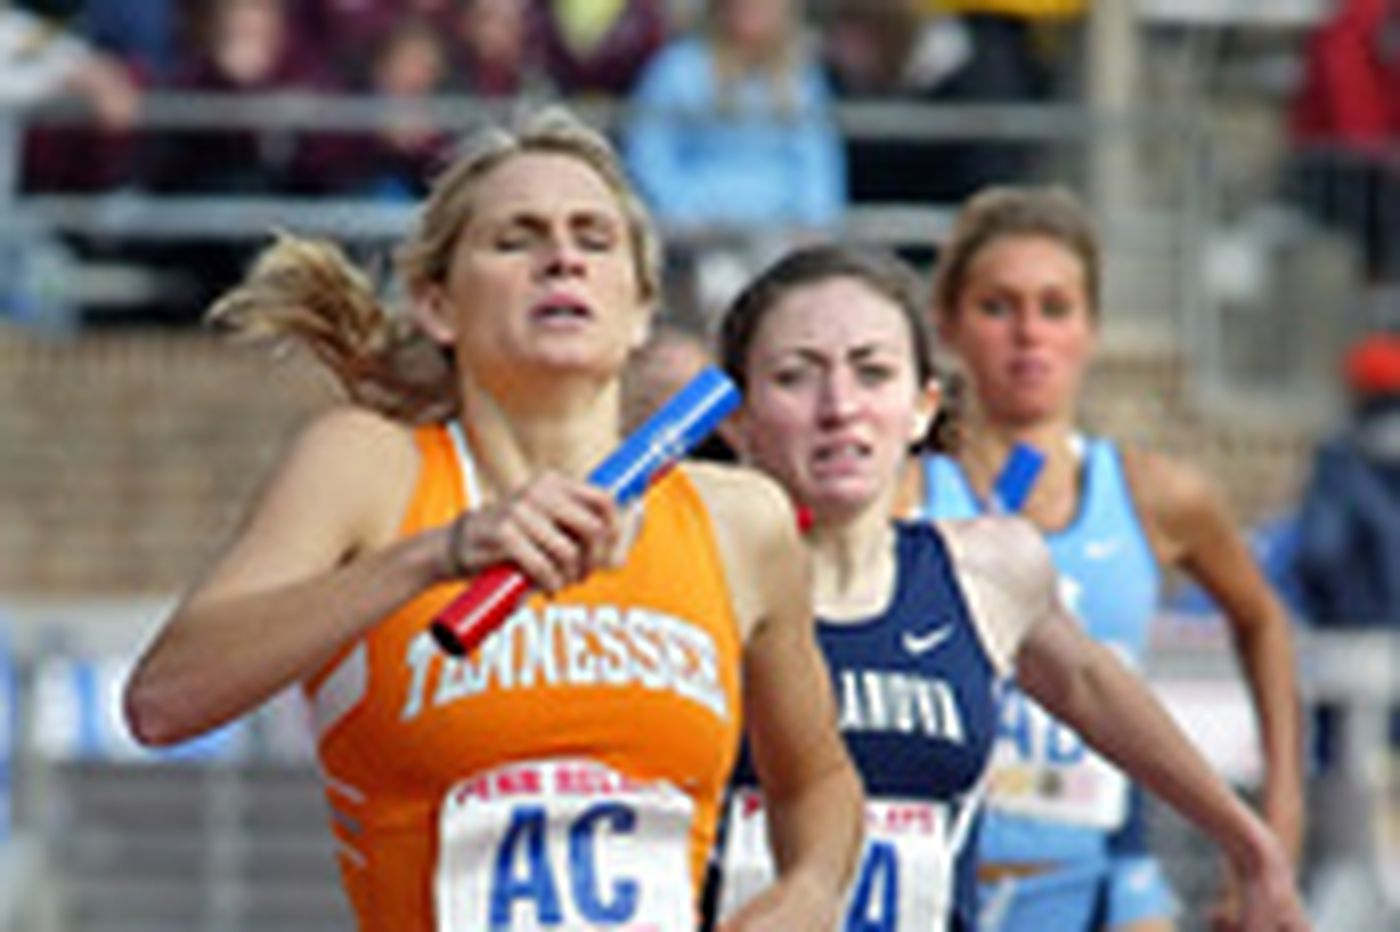 Vols outrun Wildcats . . . just barely